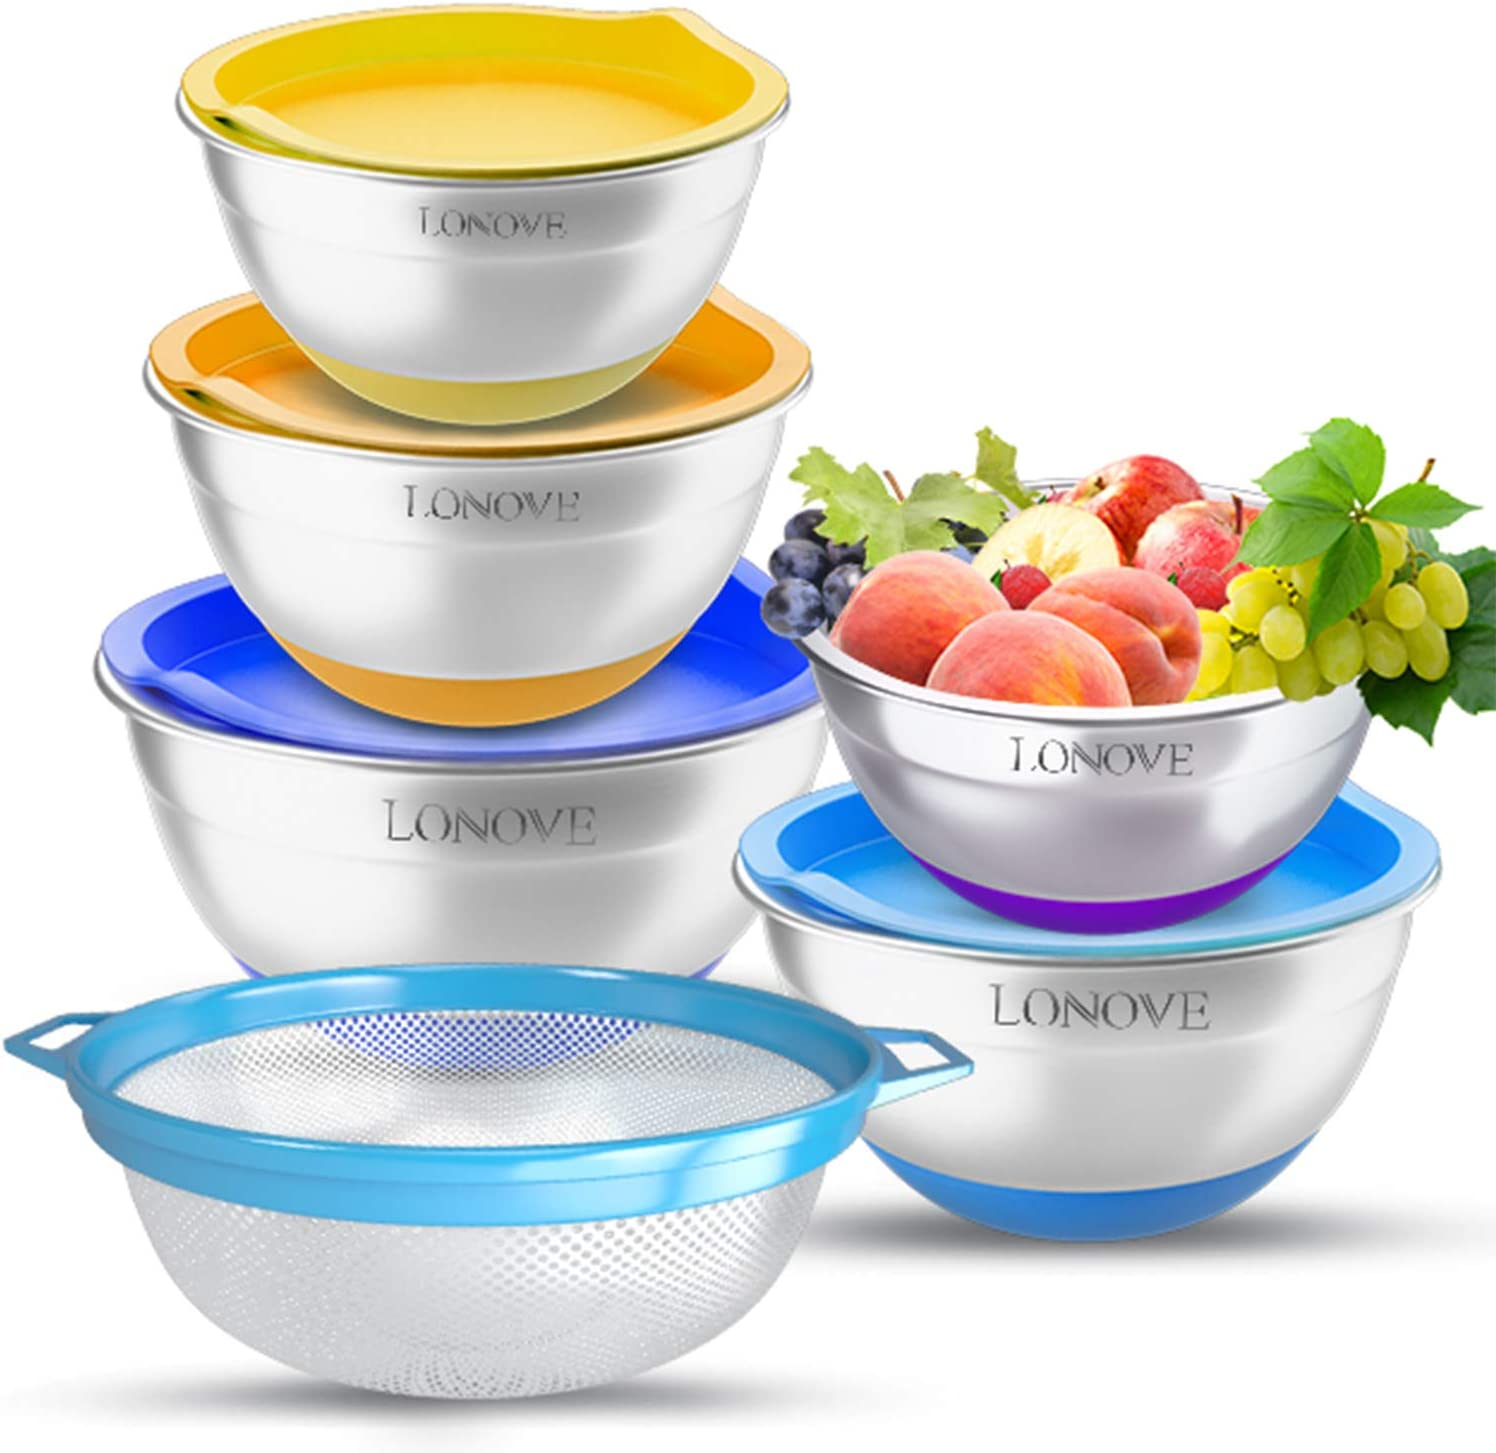 Mixing Bowls with Lids Set & Extra Colander, Colorful Stainless Steel Metal Nesting Bowls for Kitchen Non-slip Bottom Size 7, 3.5, 2.5, 2, 1.5QT, Meausring Marks, Ideal for Mixing/Baking/Serving, 6pcs